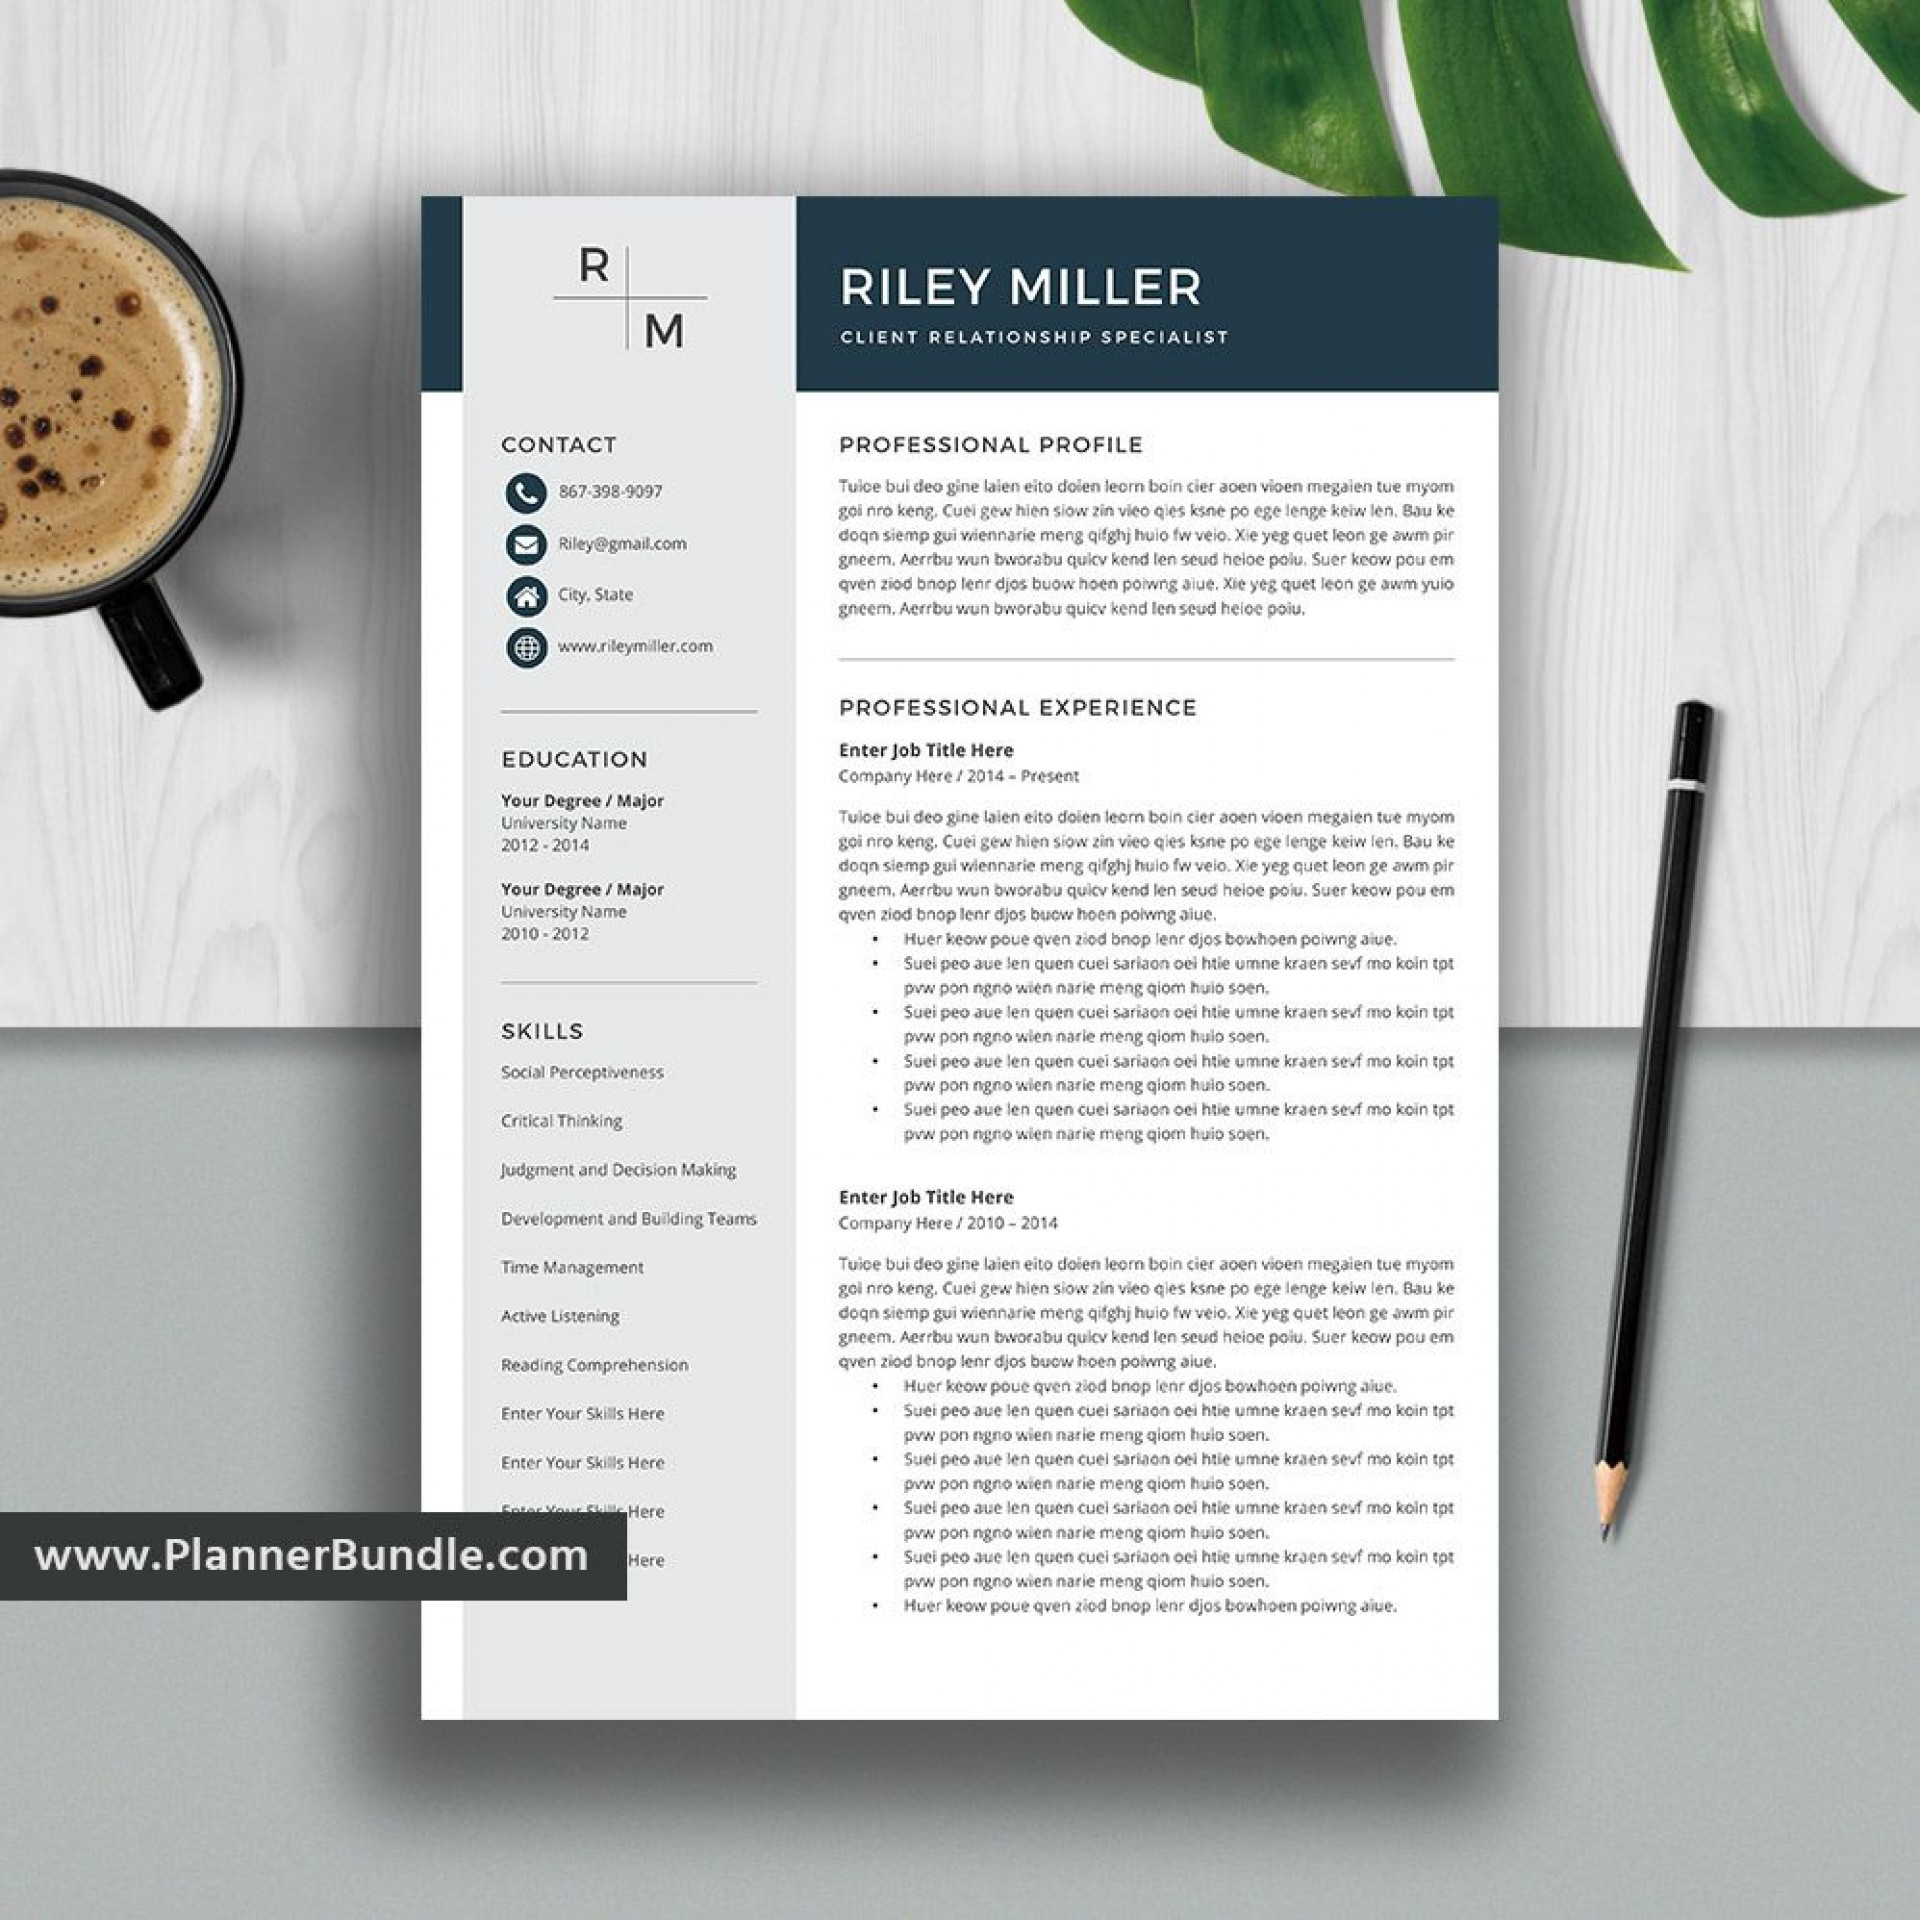 006 Imposing Microsoft Word Resume Template 2020 Picture  Free1920